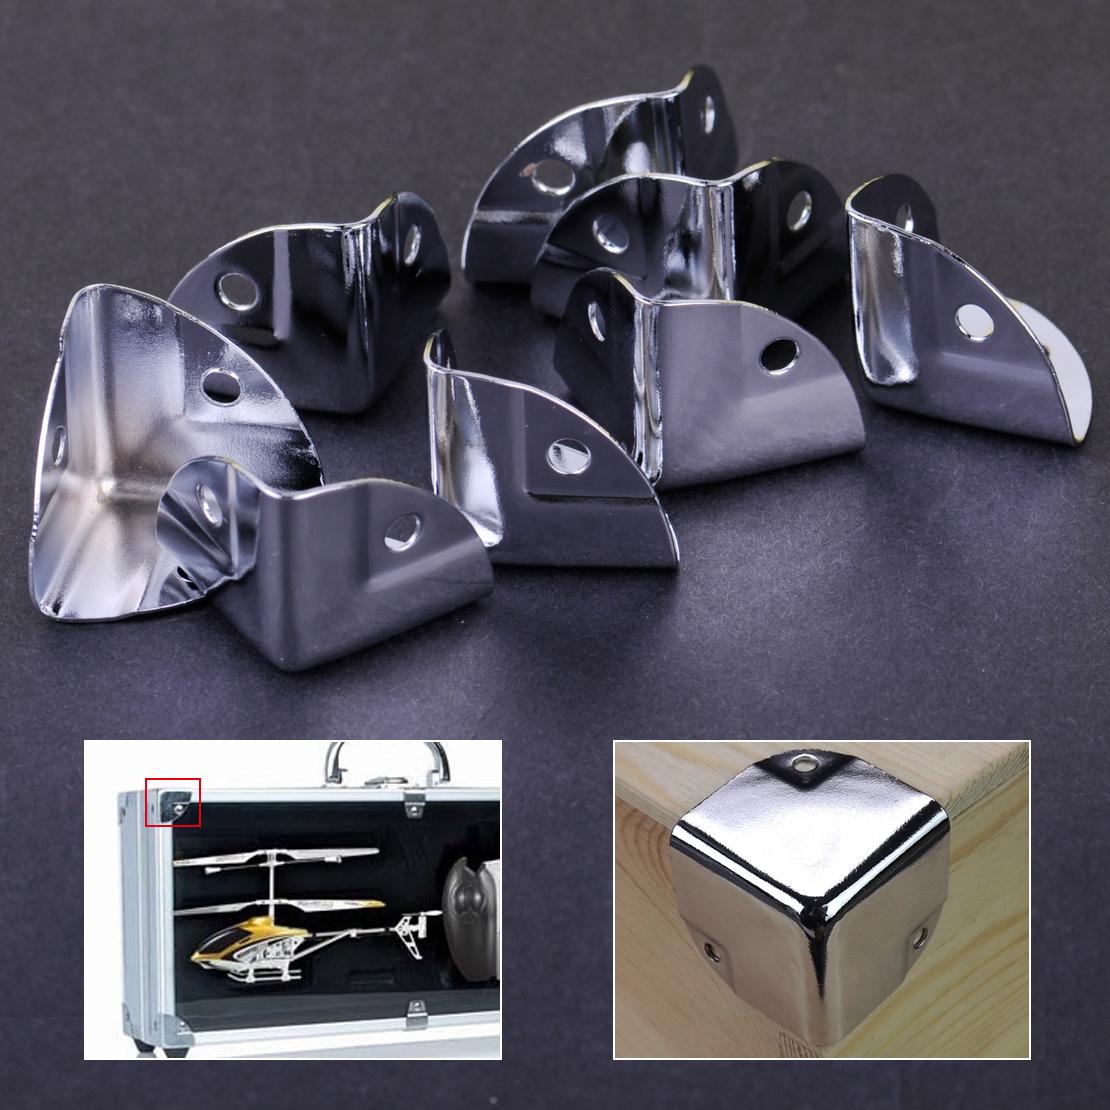 8pcs Metal Corner Bracket Angle Brace Protectors For Wooden Trunk Box Chest Flightcase